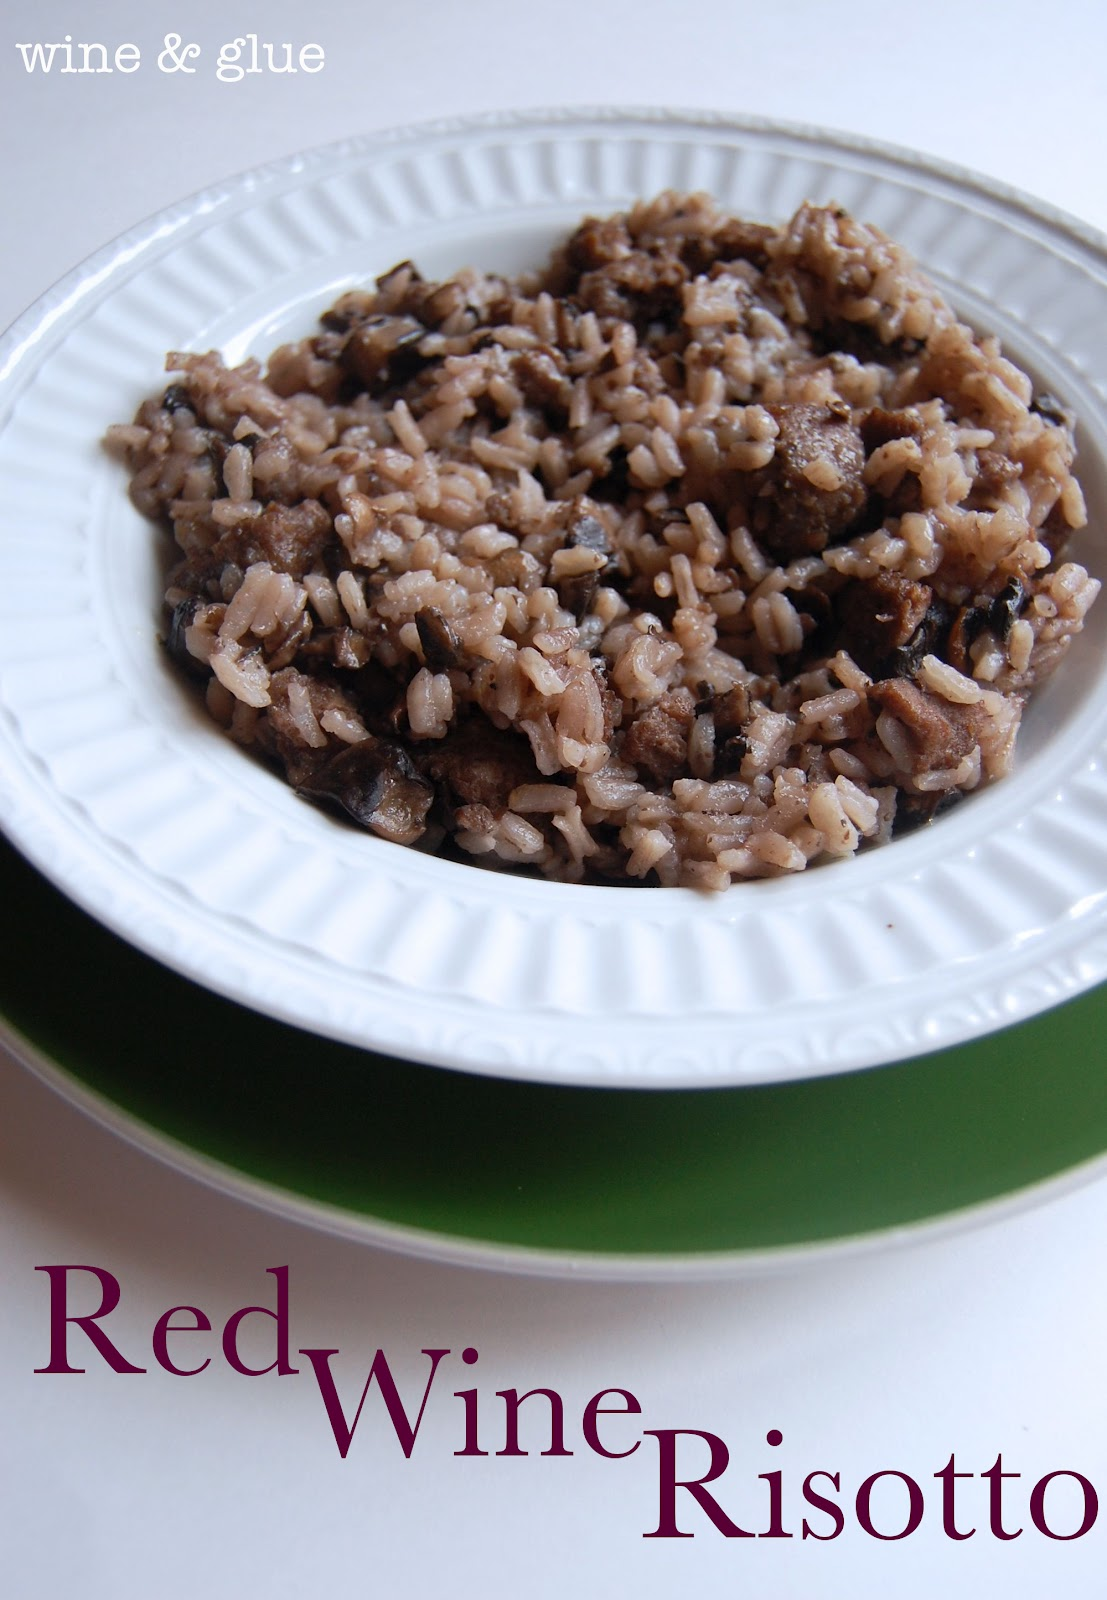 Red Wine Risotto - Wine & Glue